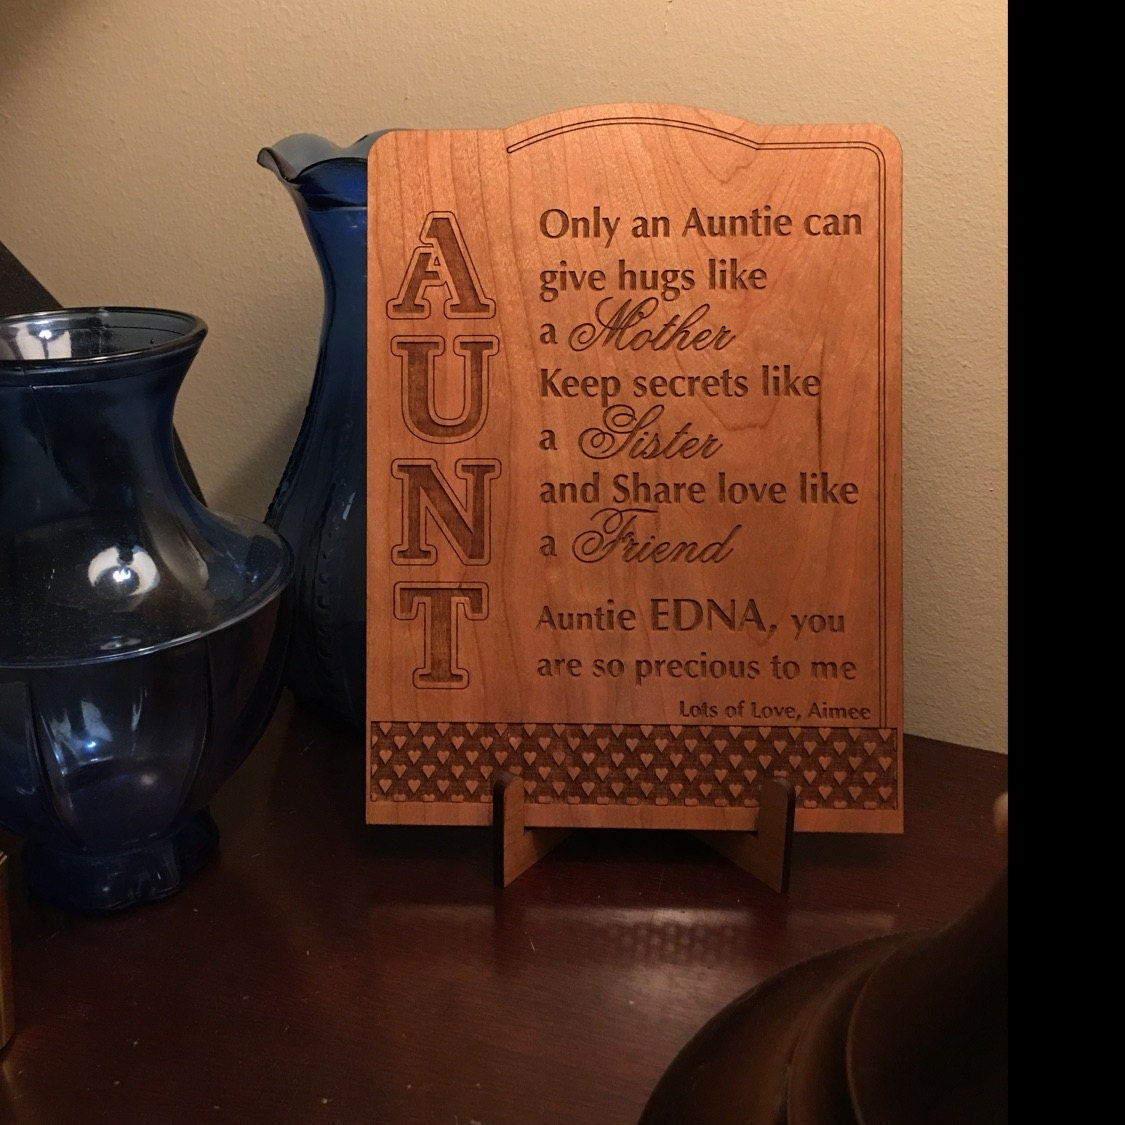 Aimee Lee added a photo of their purchase